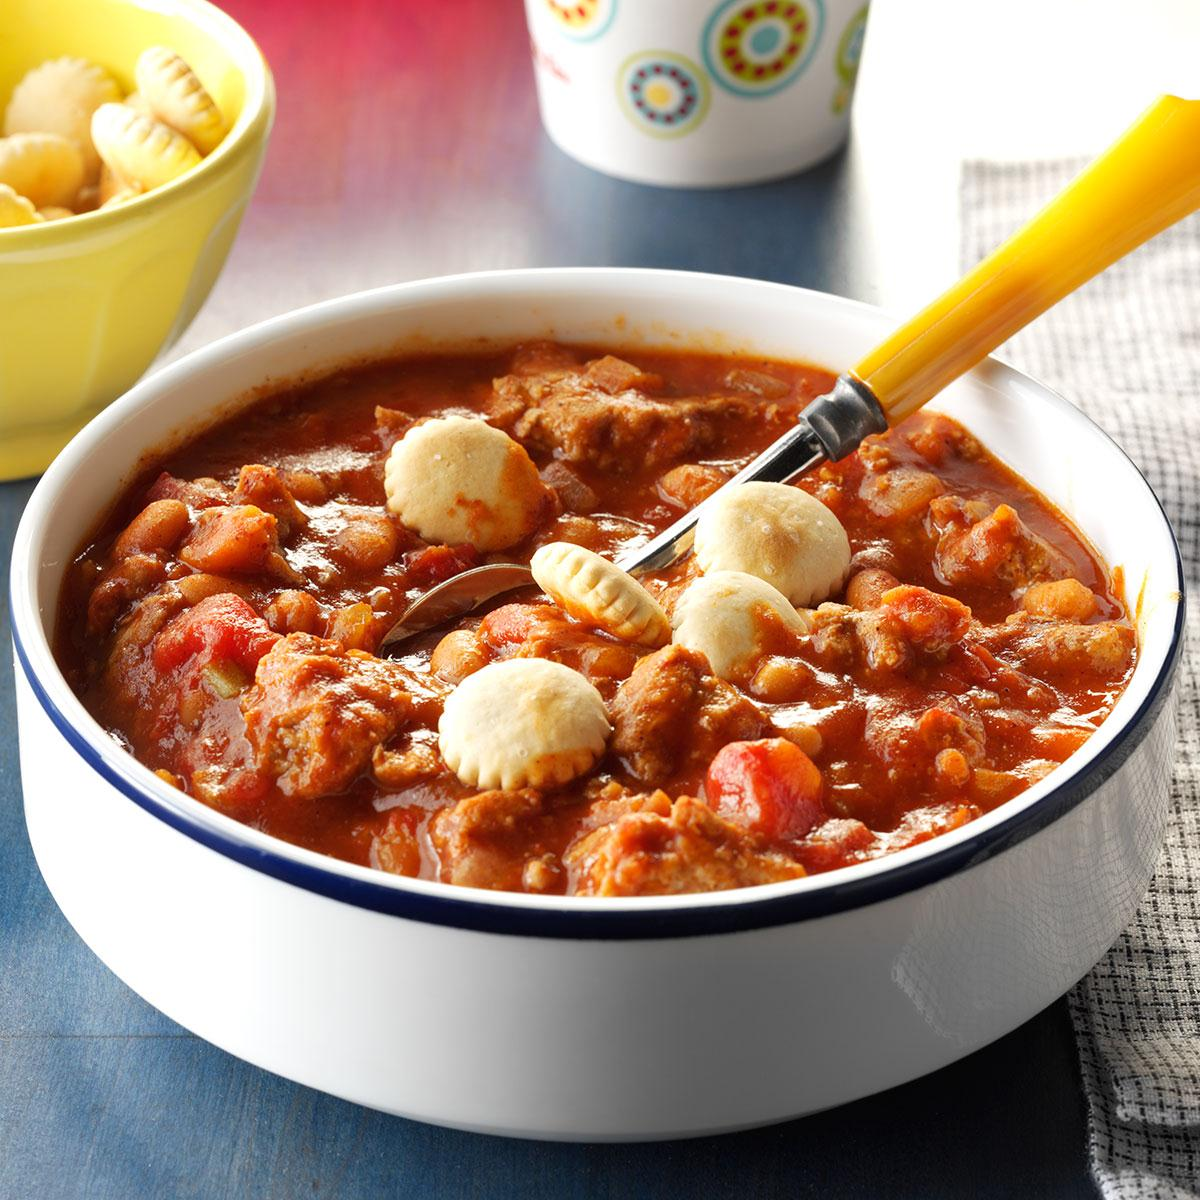 Kids Favorite Chili Recipe How To Make It Taste Of Home